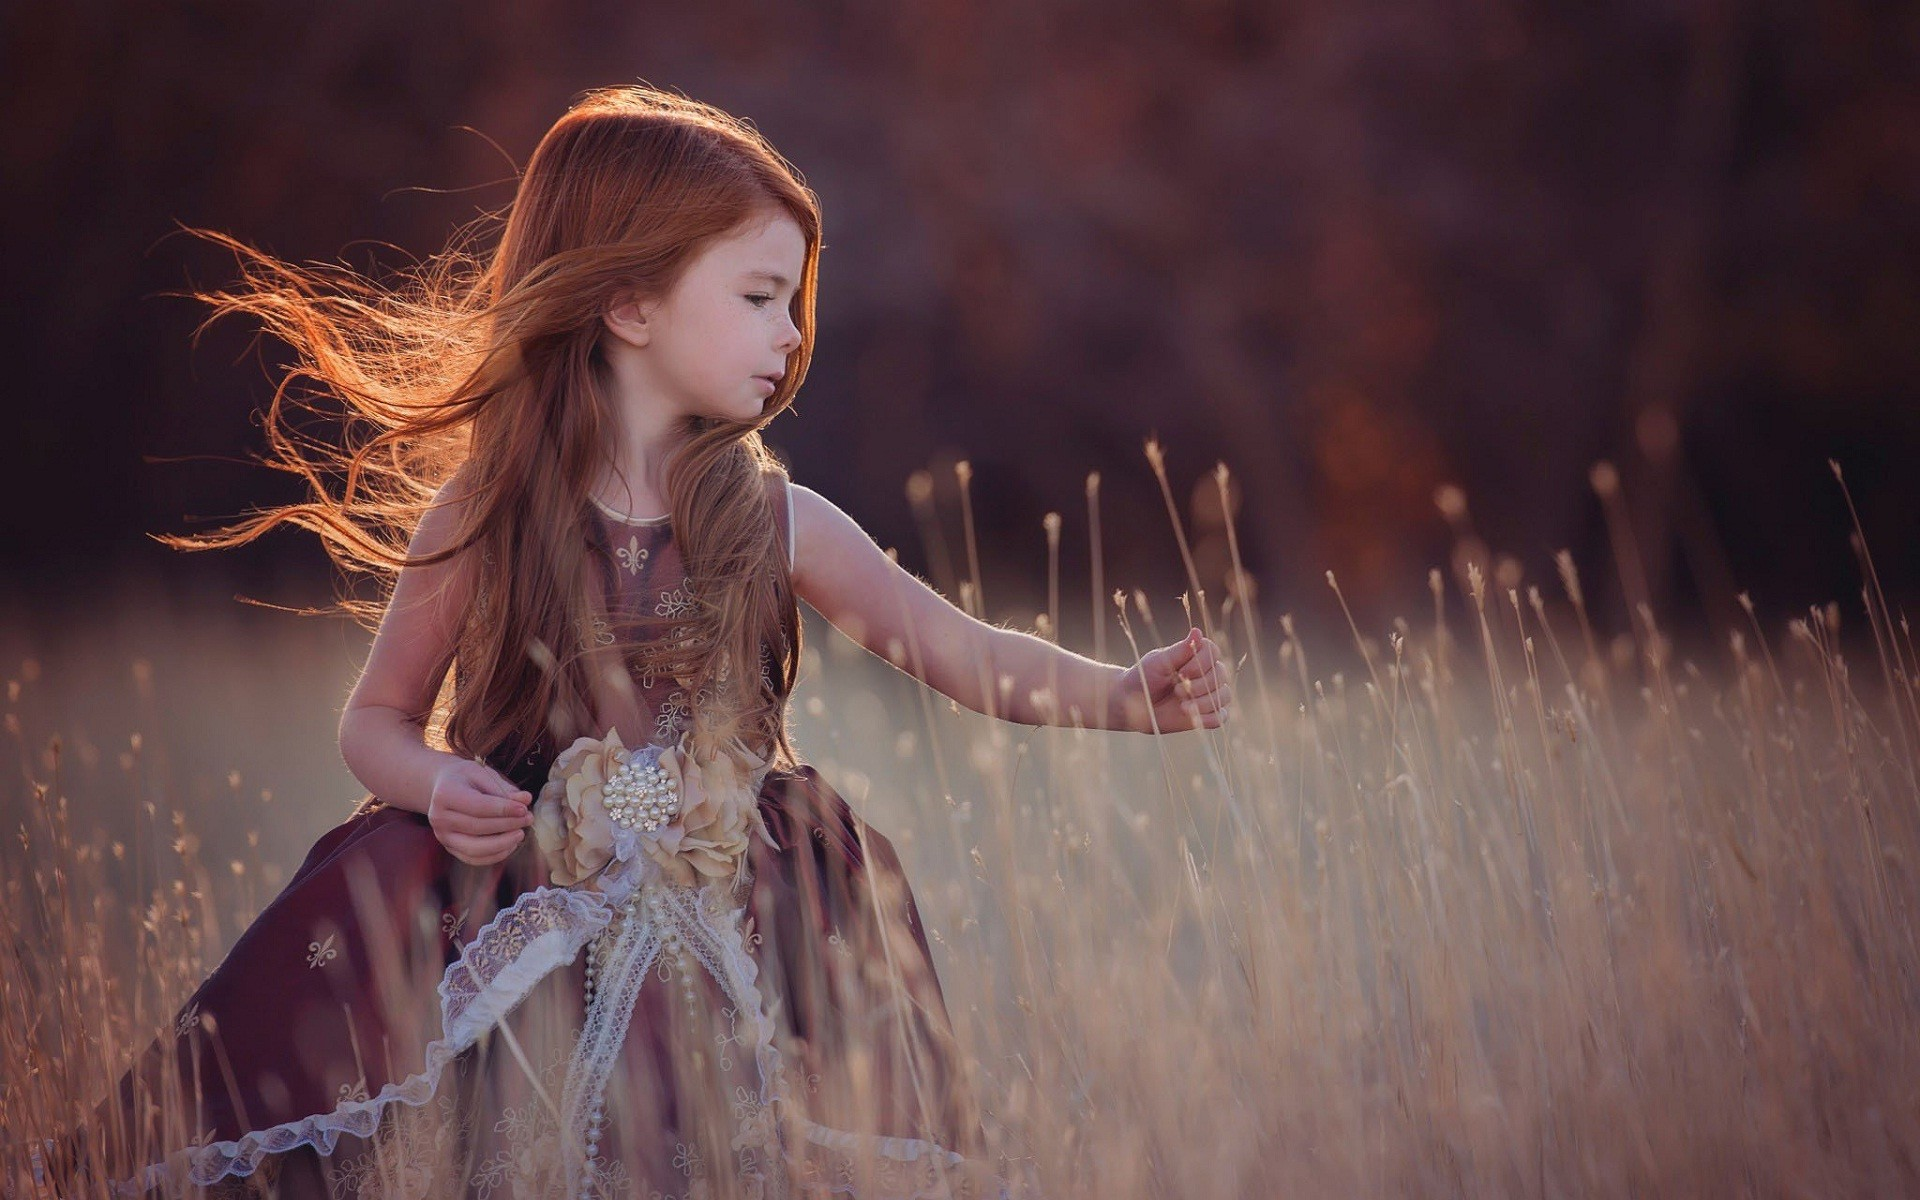 1920x1200 Cute Baby Girl Pictures For Facebook Profile Weneedfun